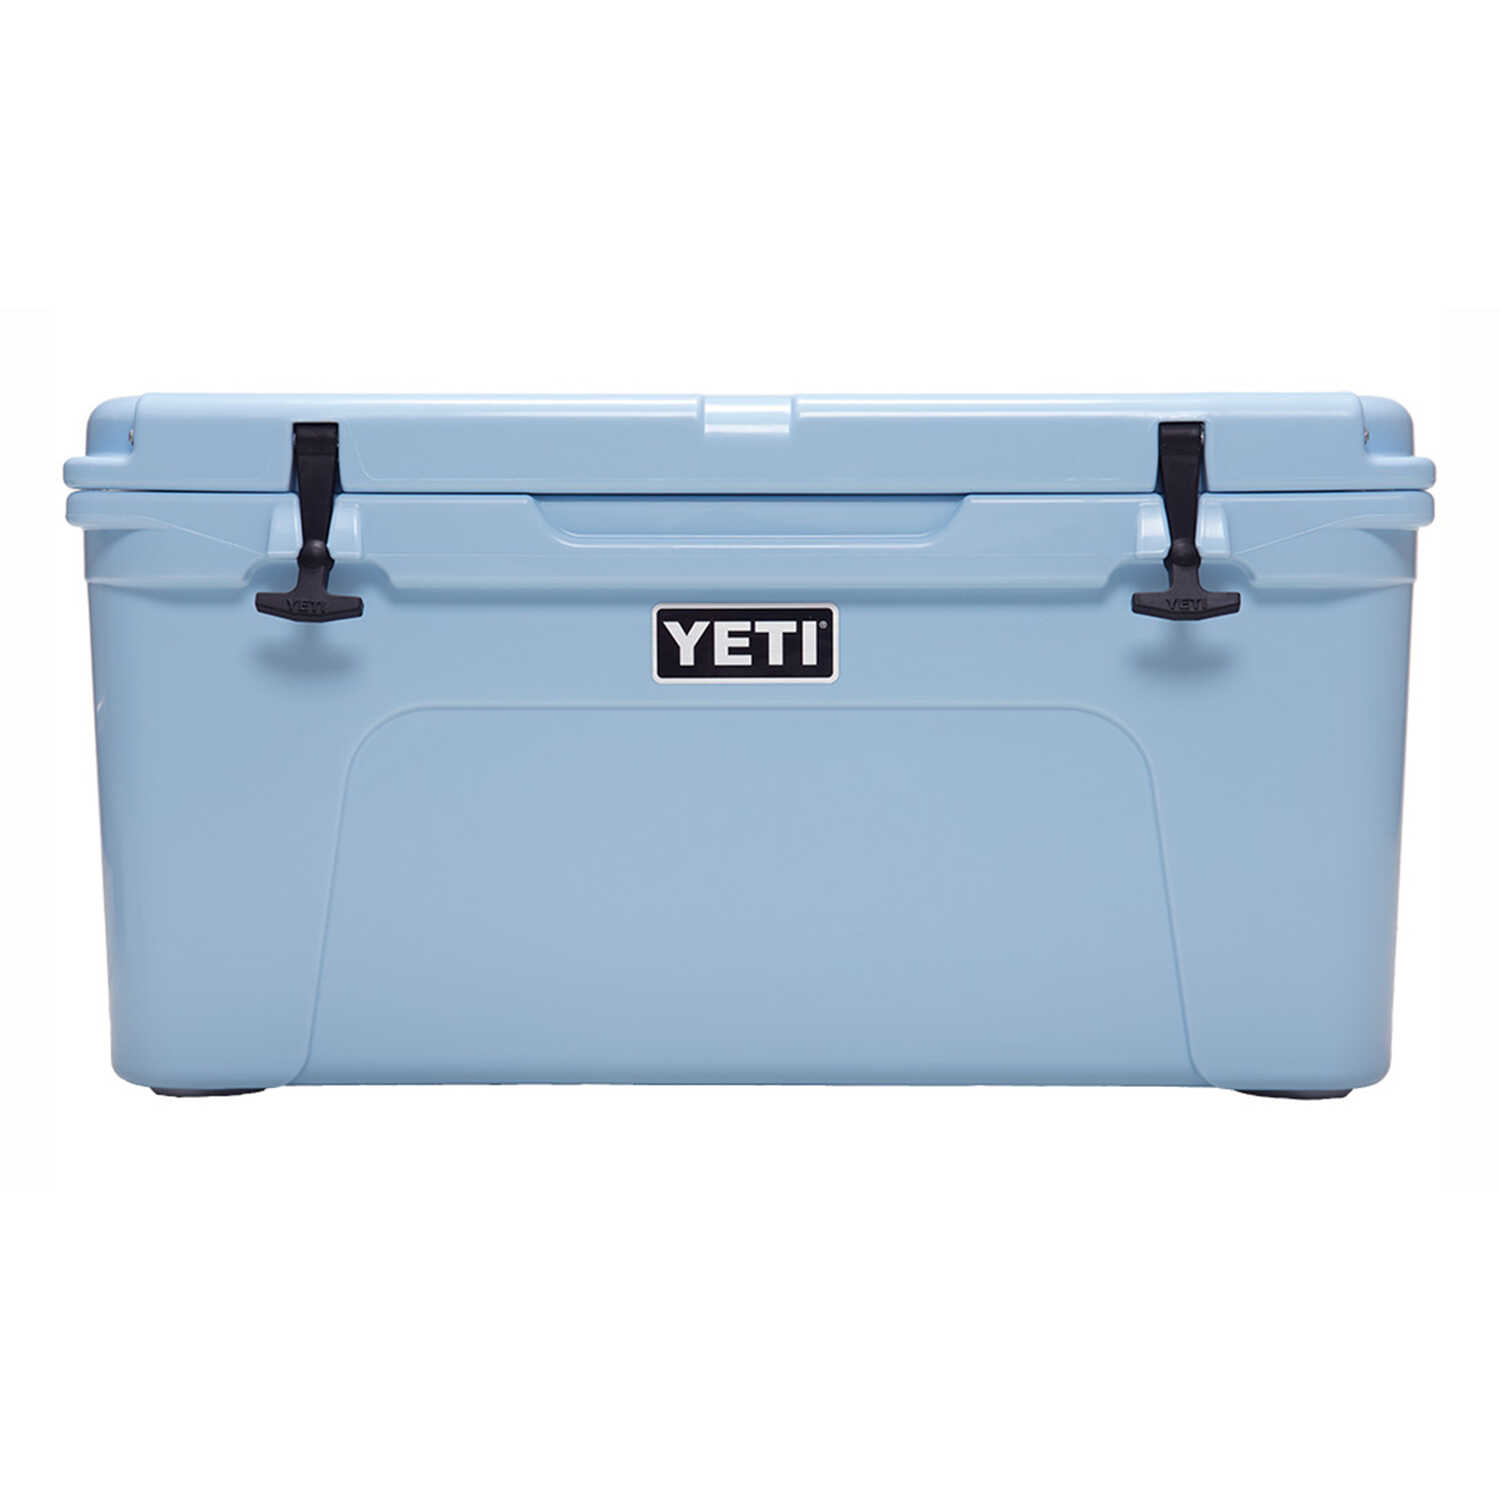 YETI  Tundra 65  Cooler  42 cans Blue